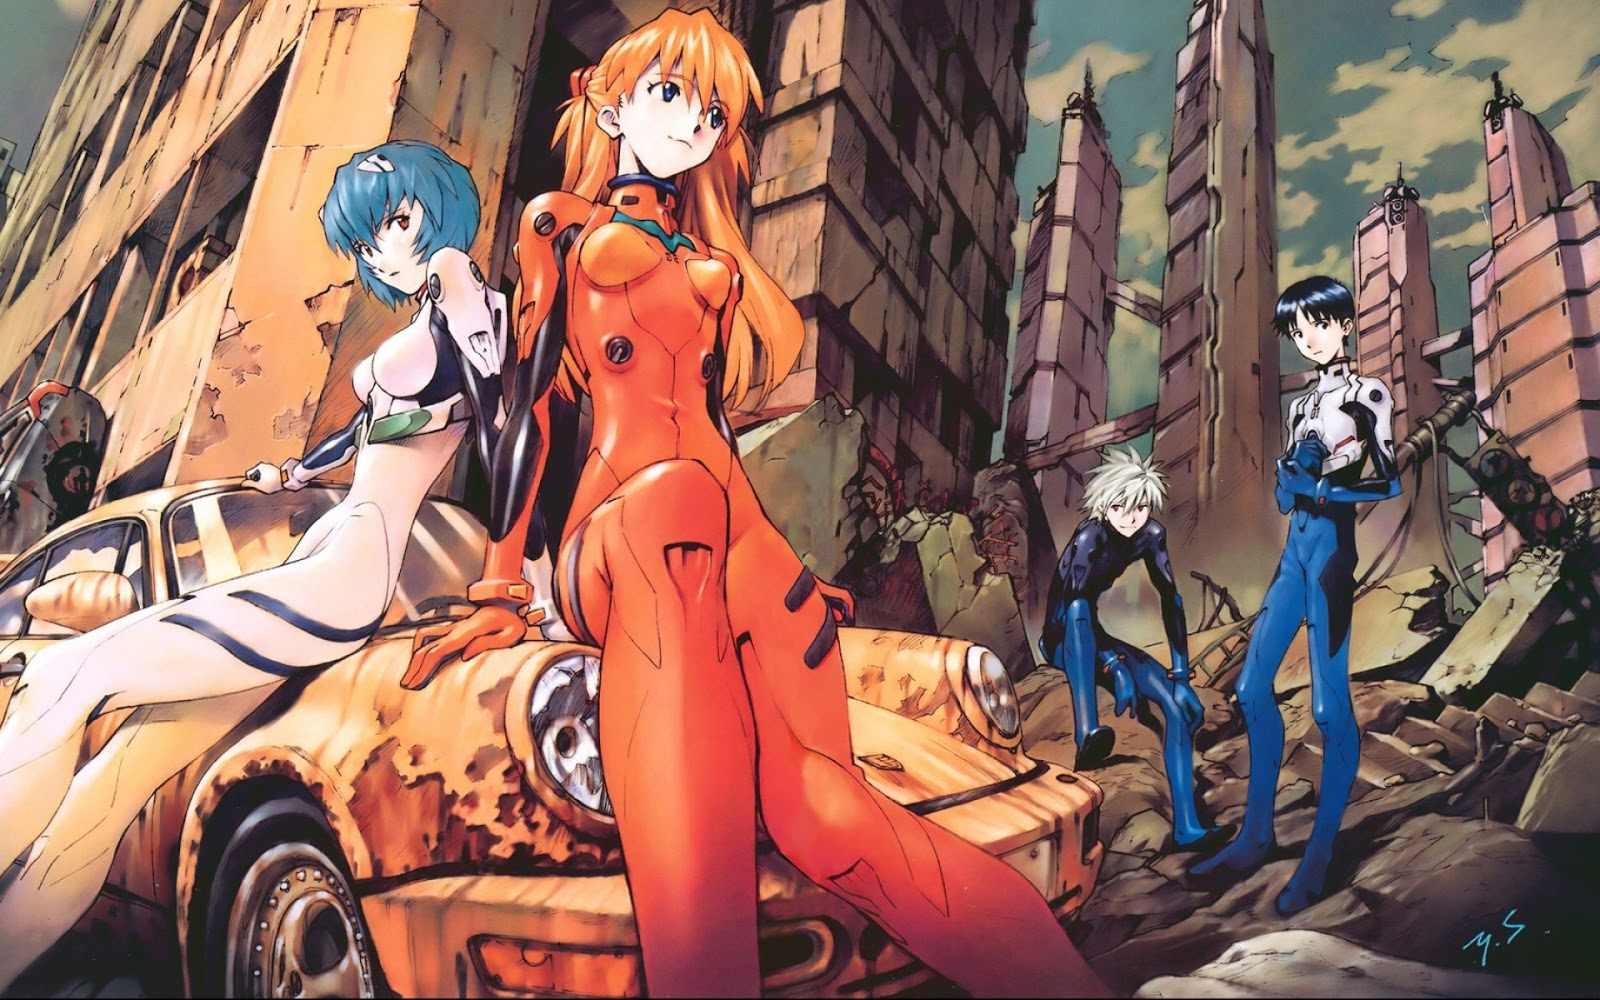 Shin Evangelion Reveals First Visual From The New Anime Film.